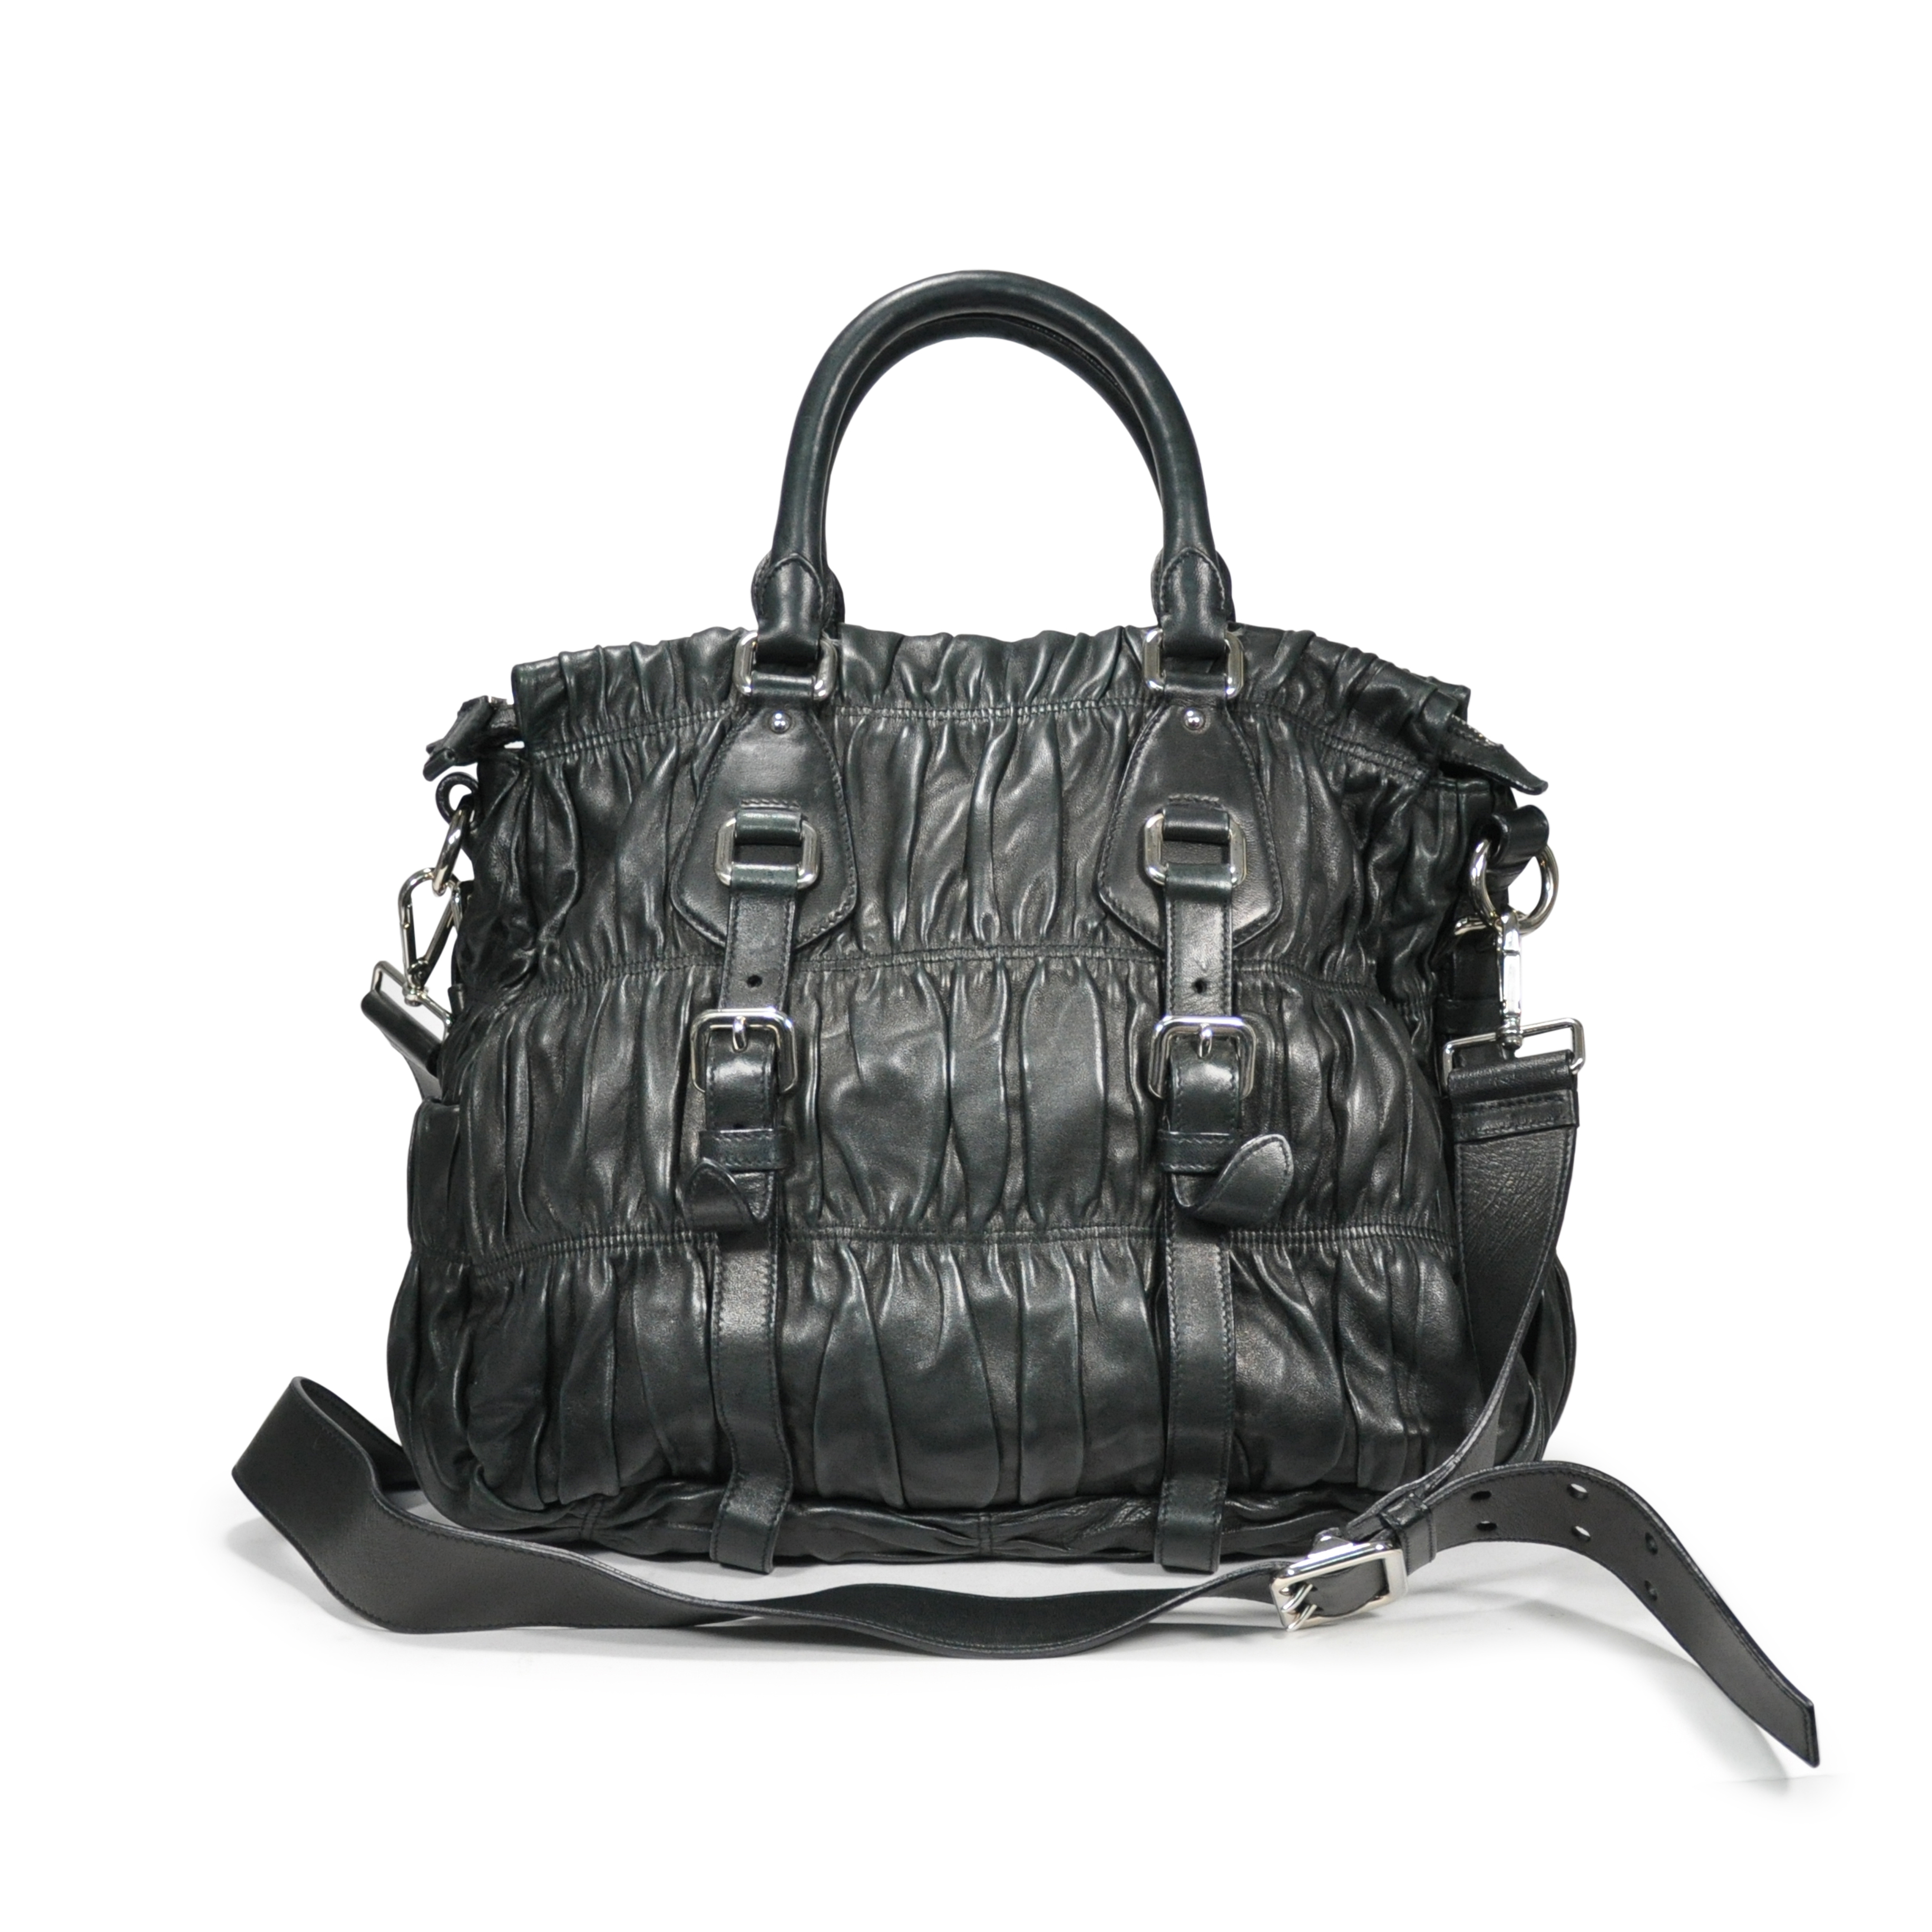 159579d76c53 Authentic Second Hand Prada Nappa Gaufre Leather Satchel (PSS-200-00031) |  THE FIFTH COLLECTION